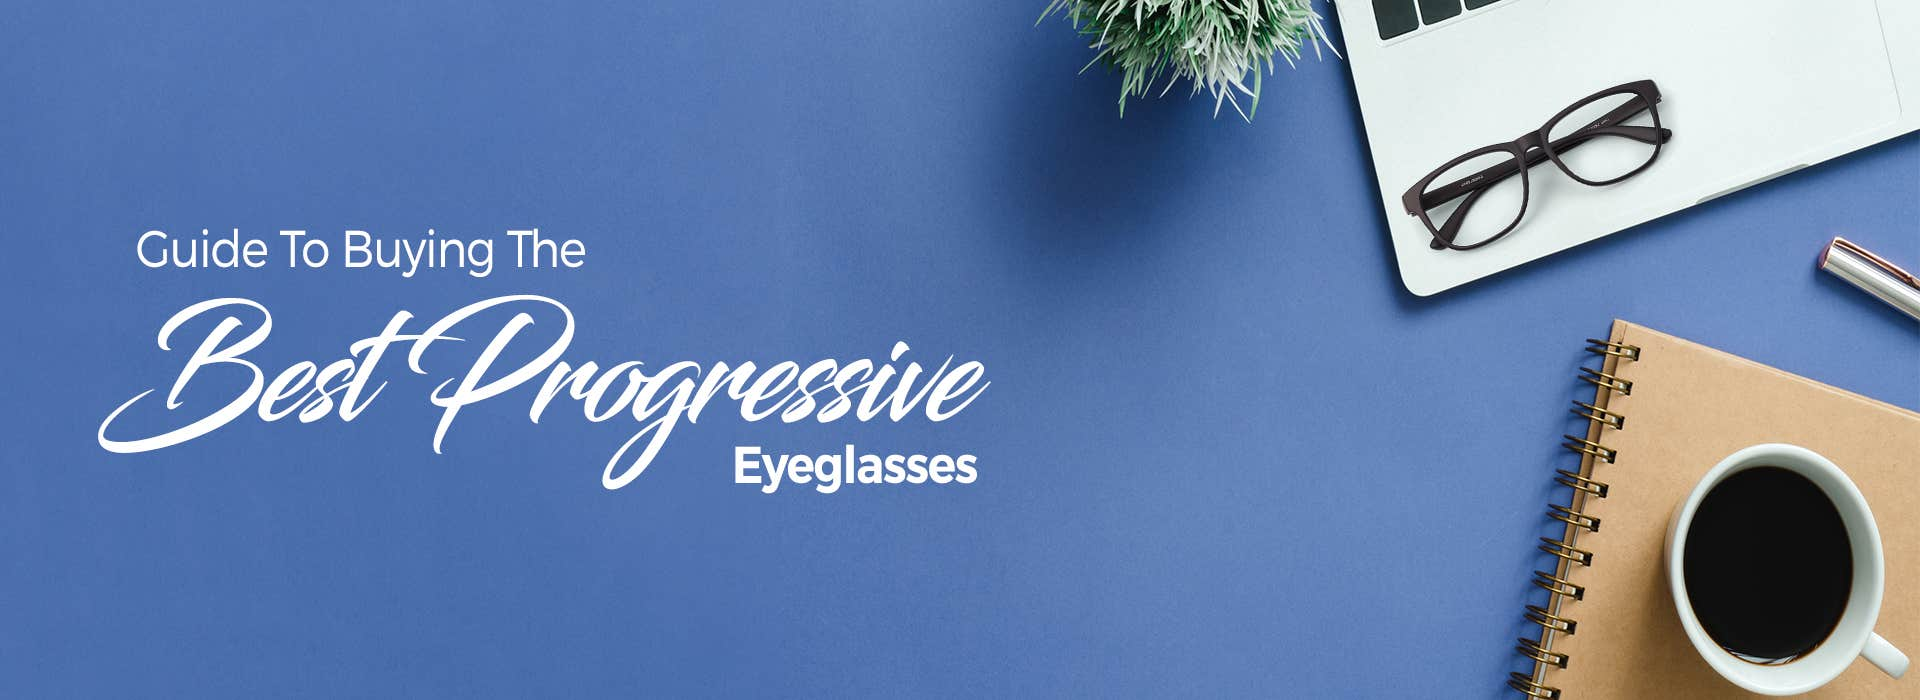 Guide To Buying The Best Progressive Eyeglasses